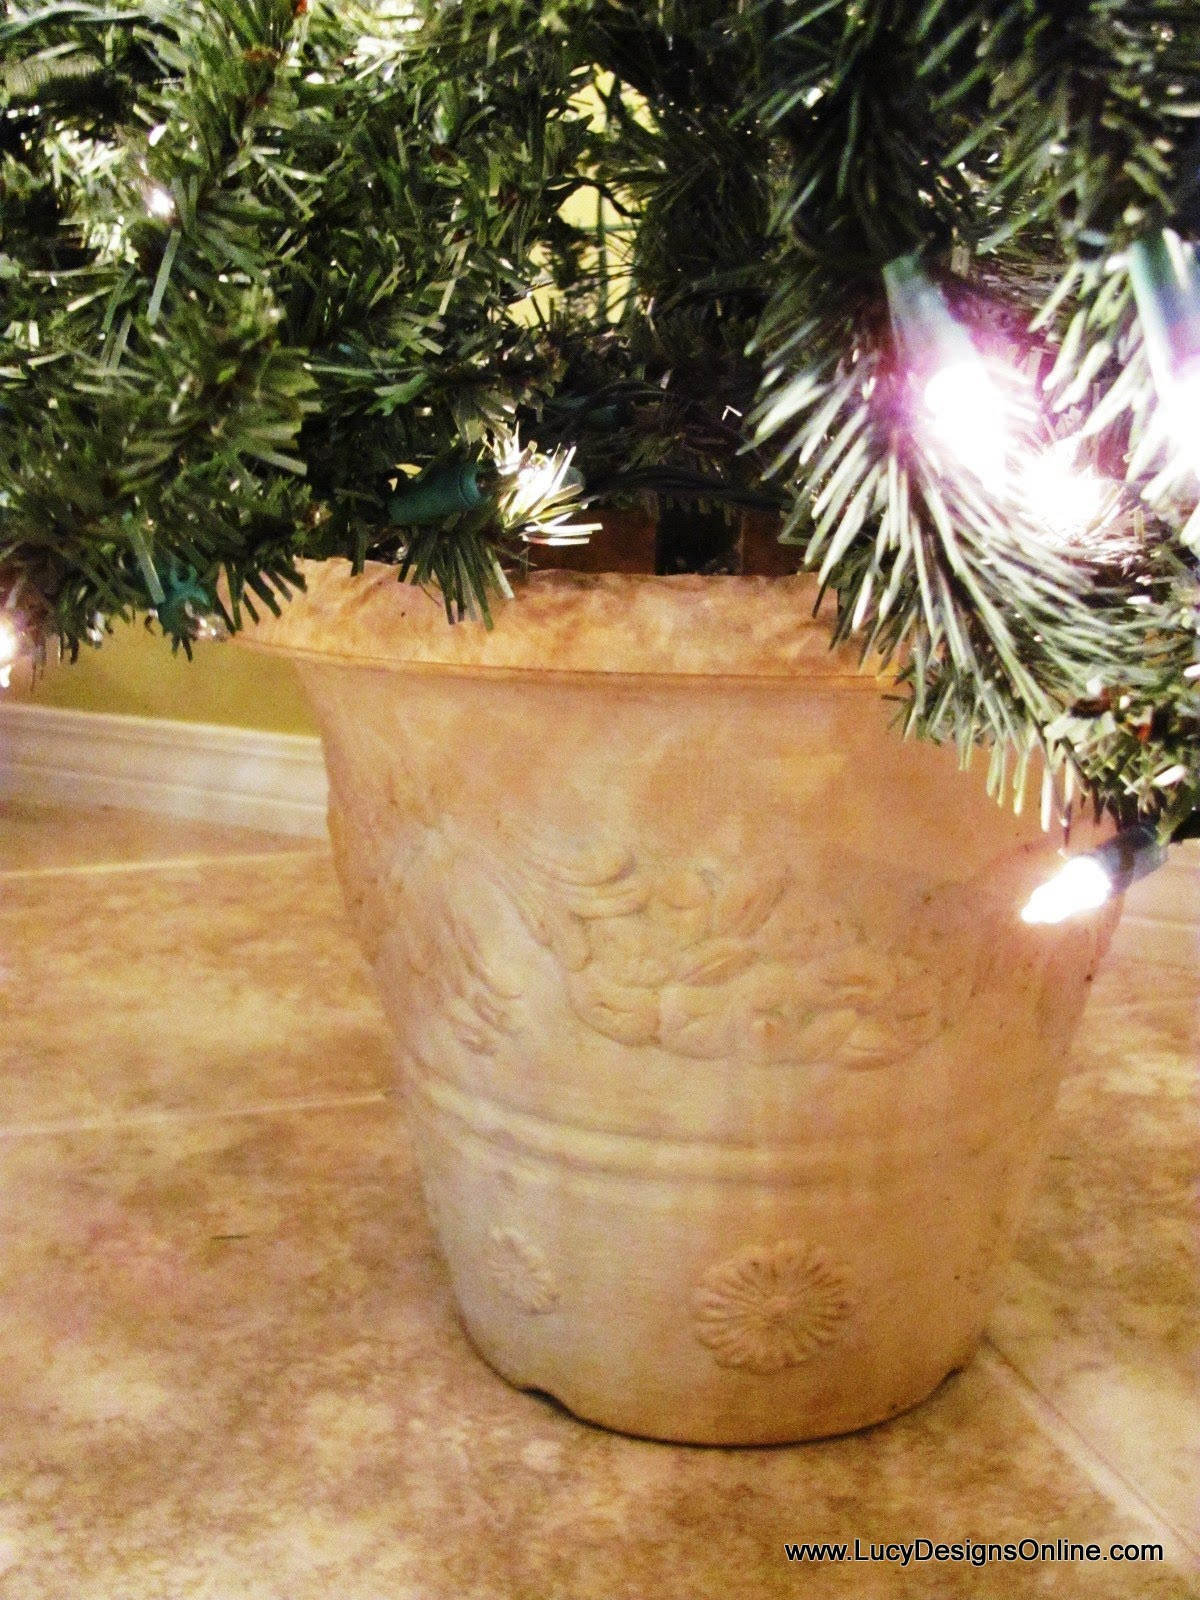 Artificial christmas tree in a planter pot diy lucy designs diy how to christmas tree in a planter pot solutioingenieria Choice Image